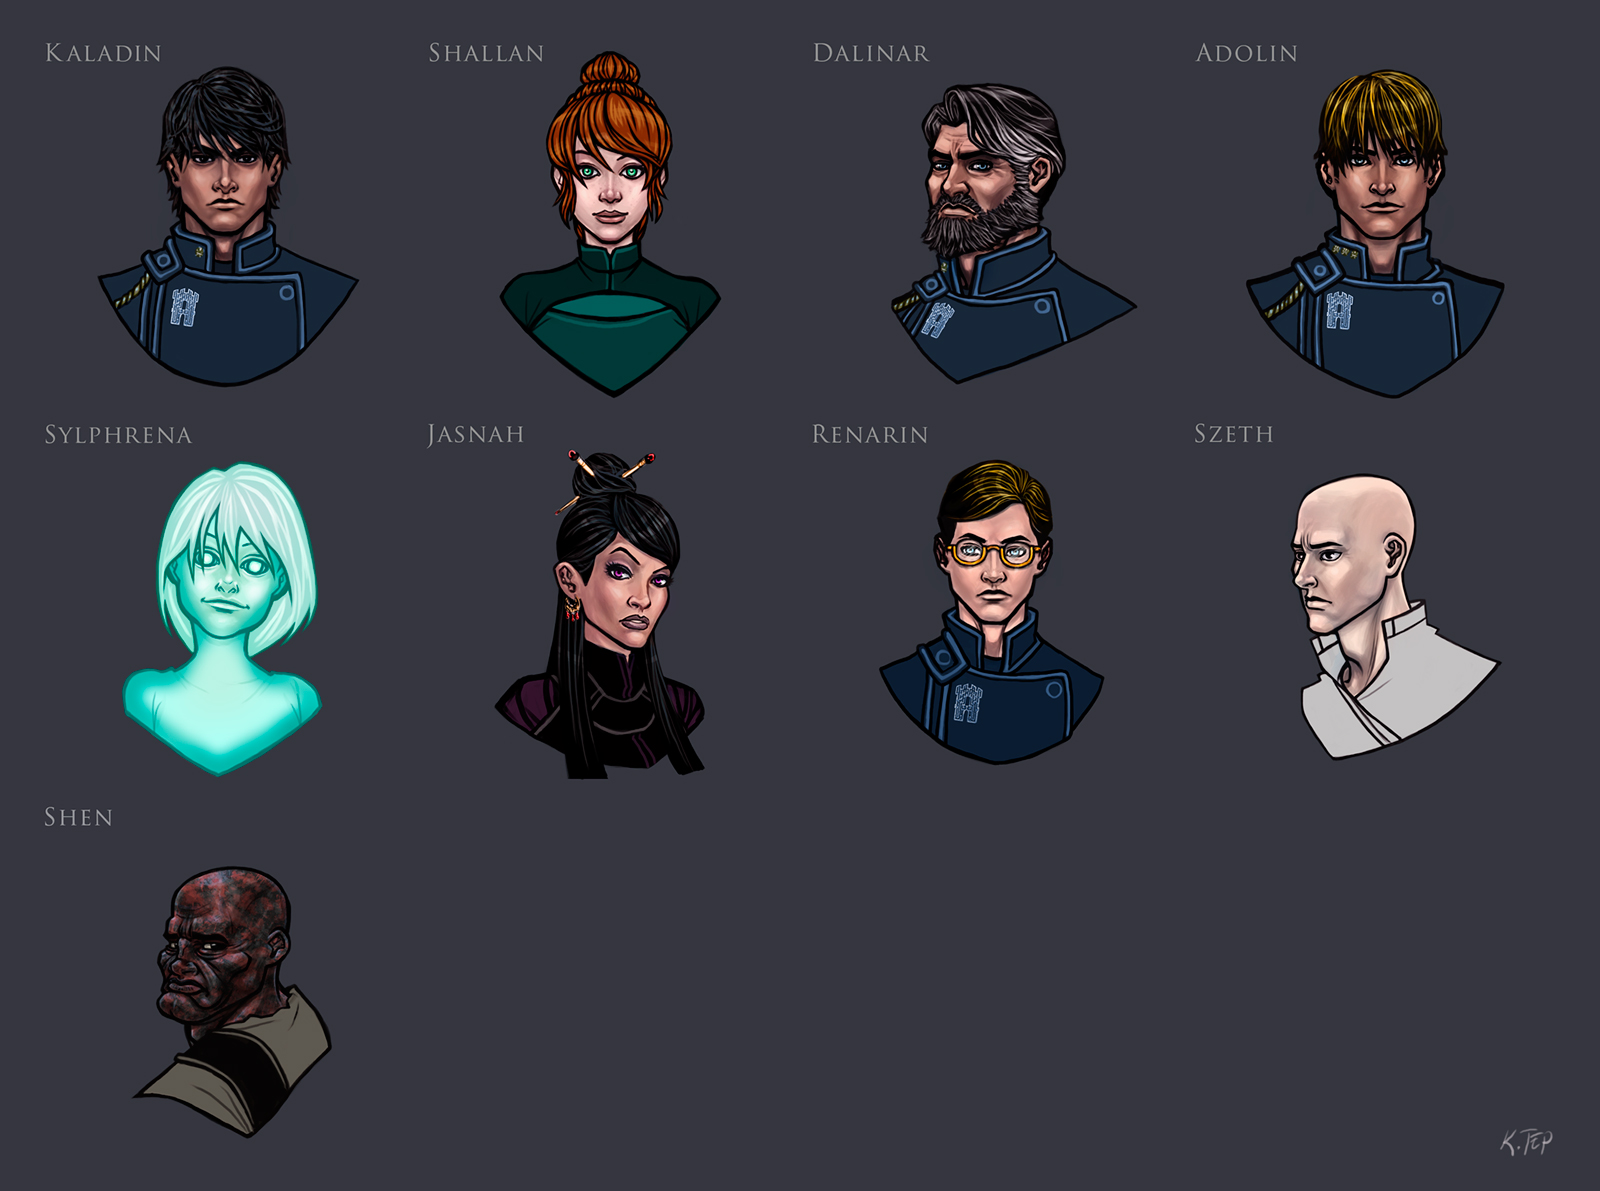 Stormlight Archive character portraits